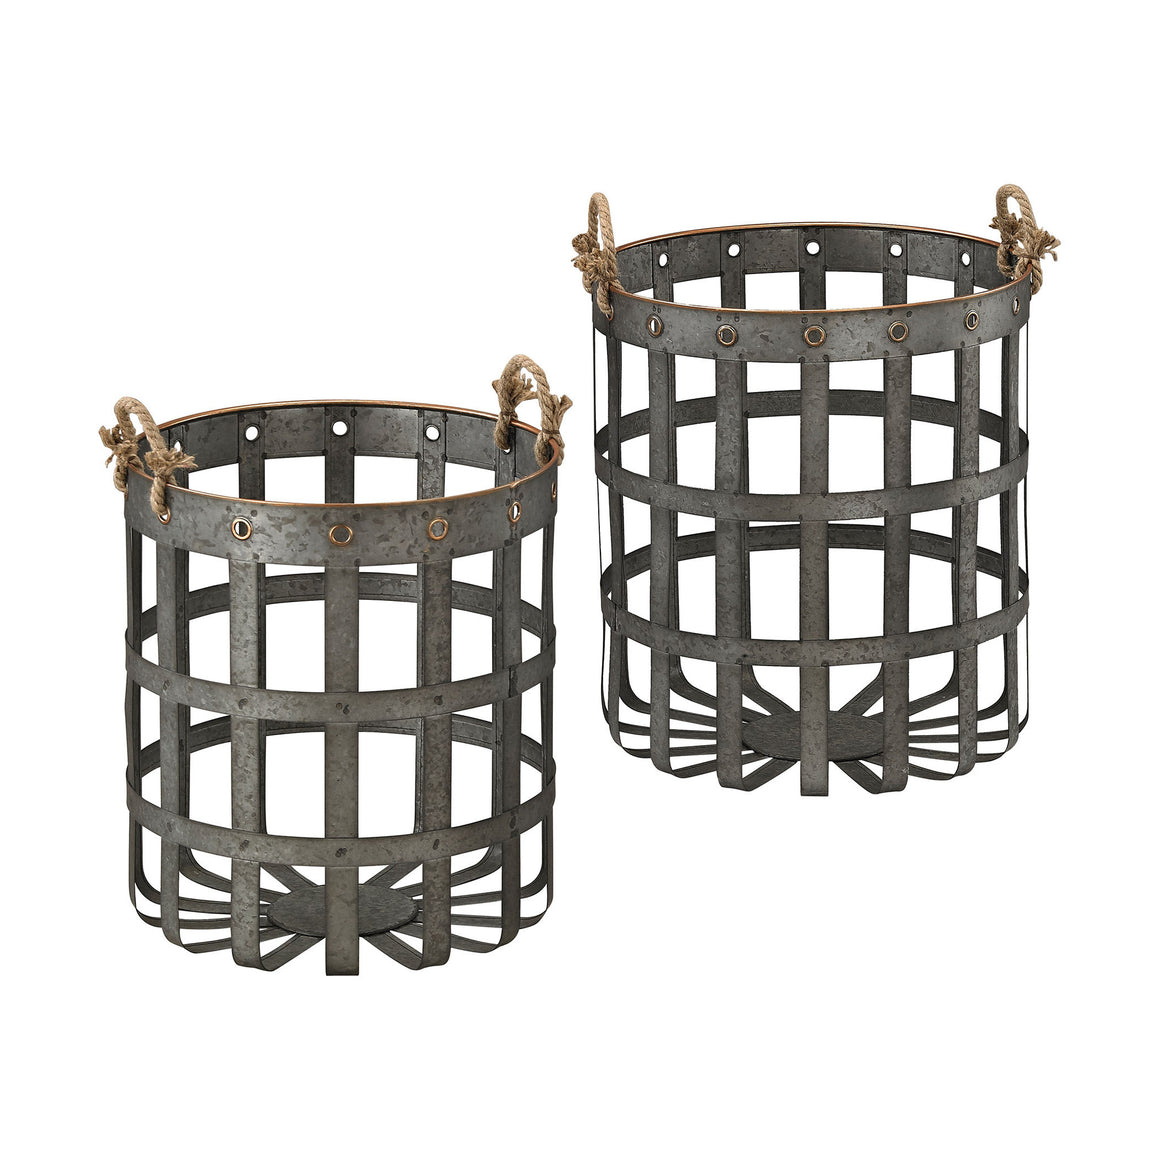 Caxton Baskets In Aged Iron With Gold Highlights